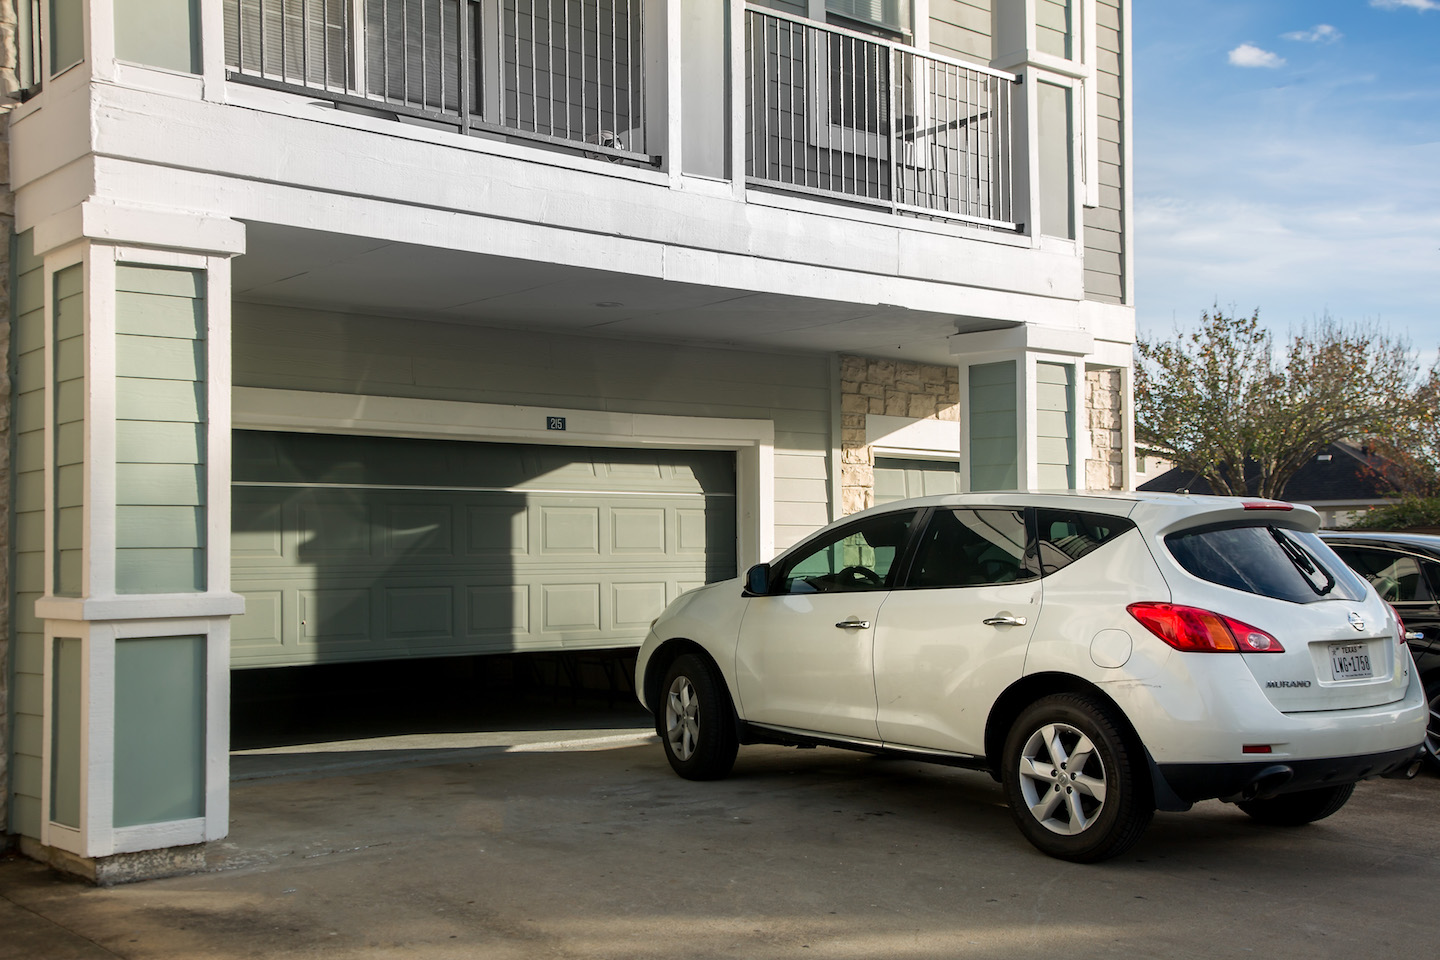 Attached Garages at The Link, a Community of Luxury Apartments in Houston, Texas